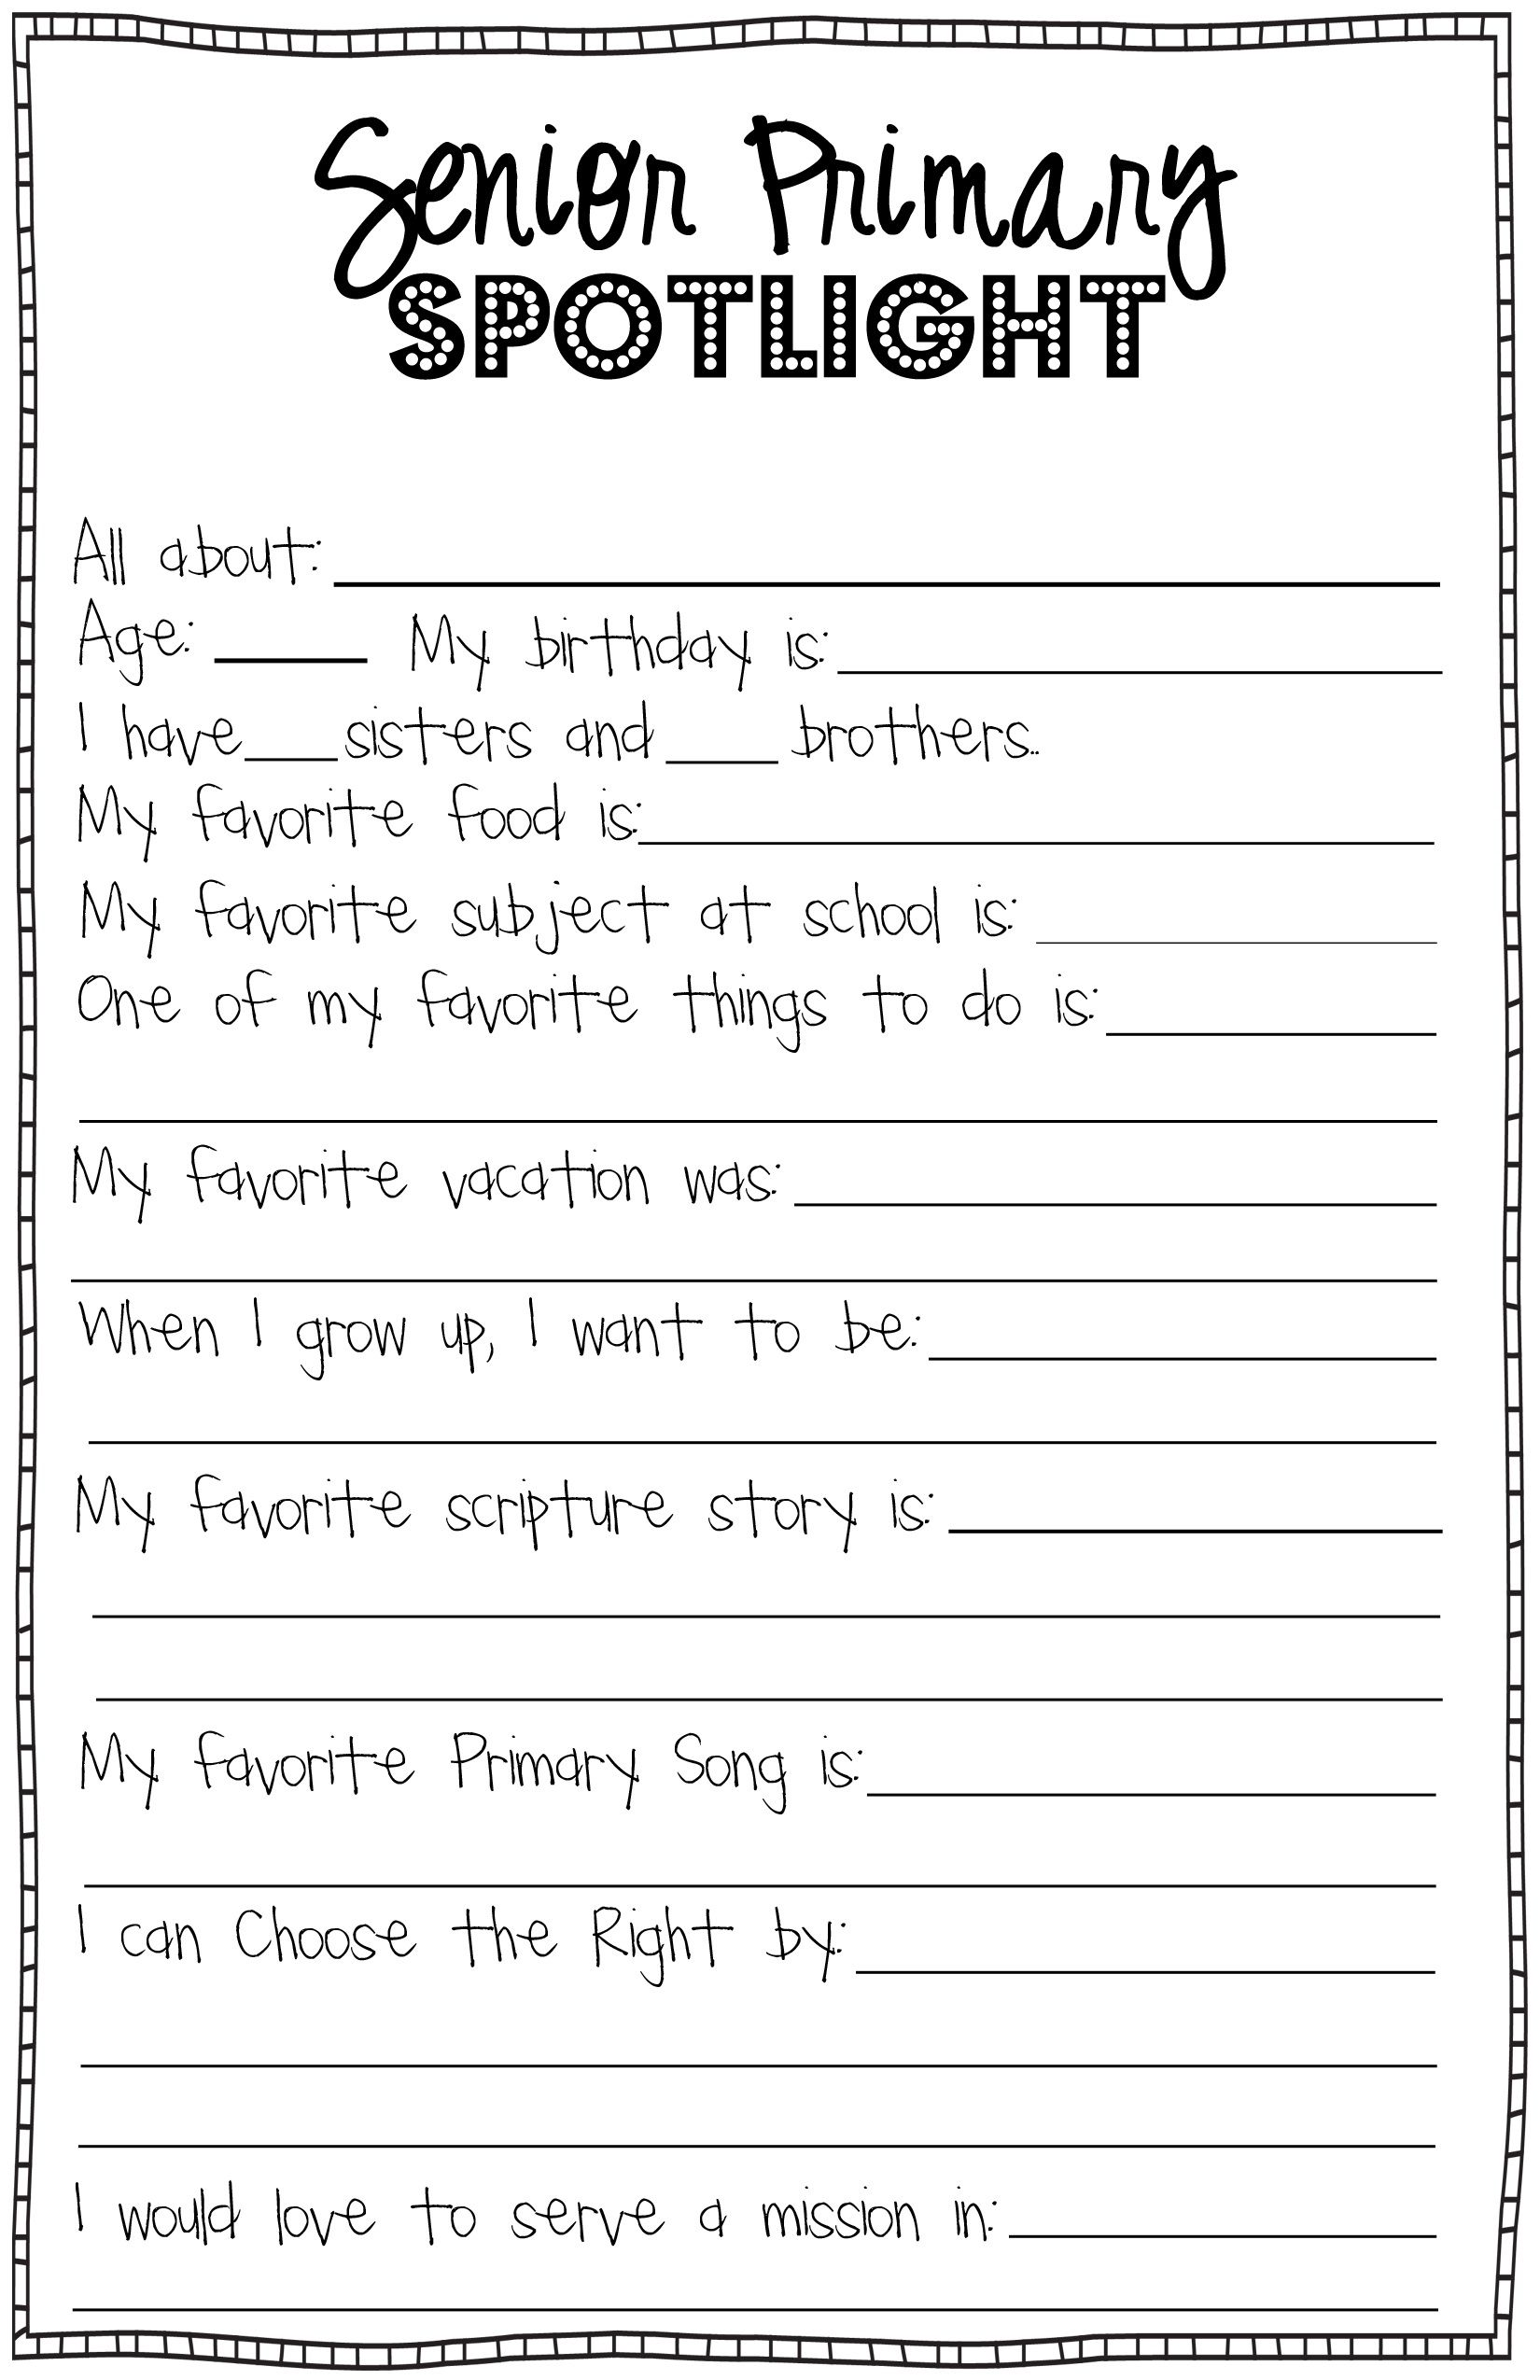 New Beginnings Teens Worksheet